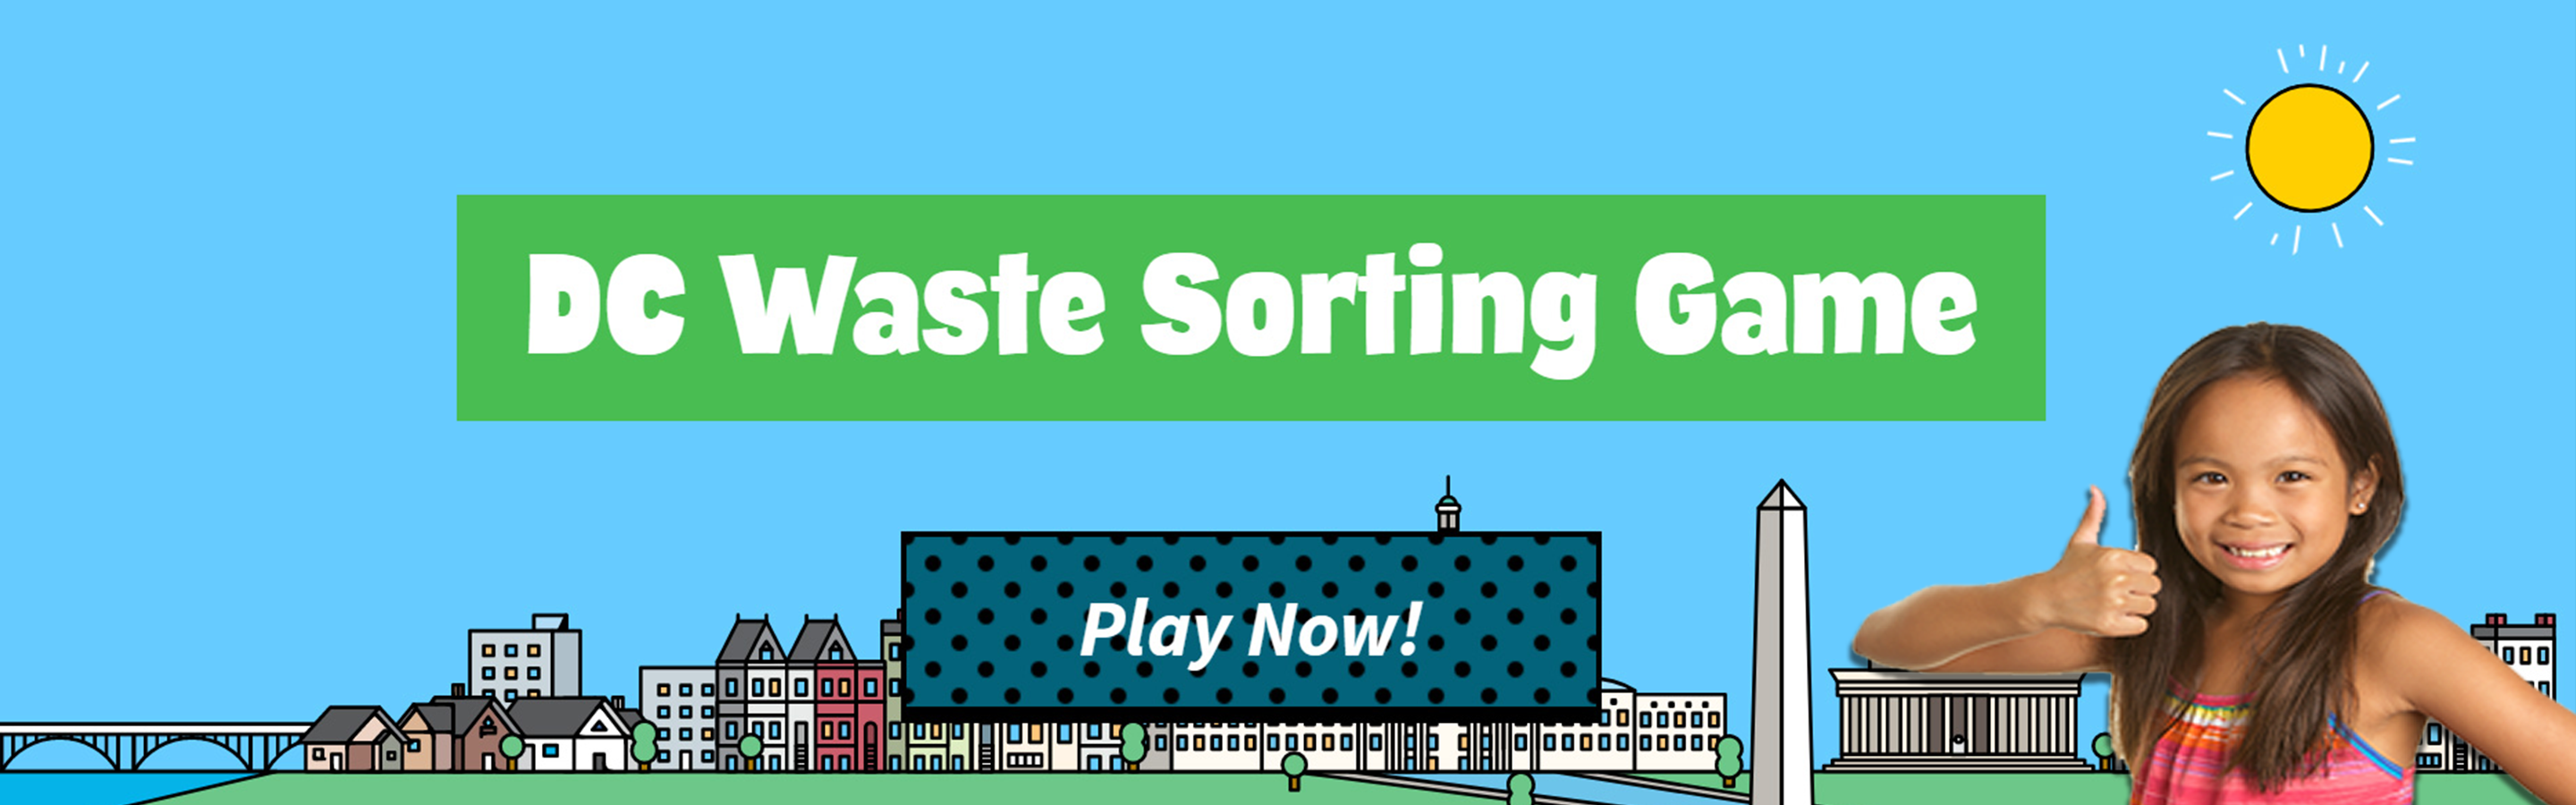 DC Waste Sorting Game